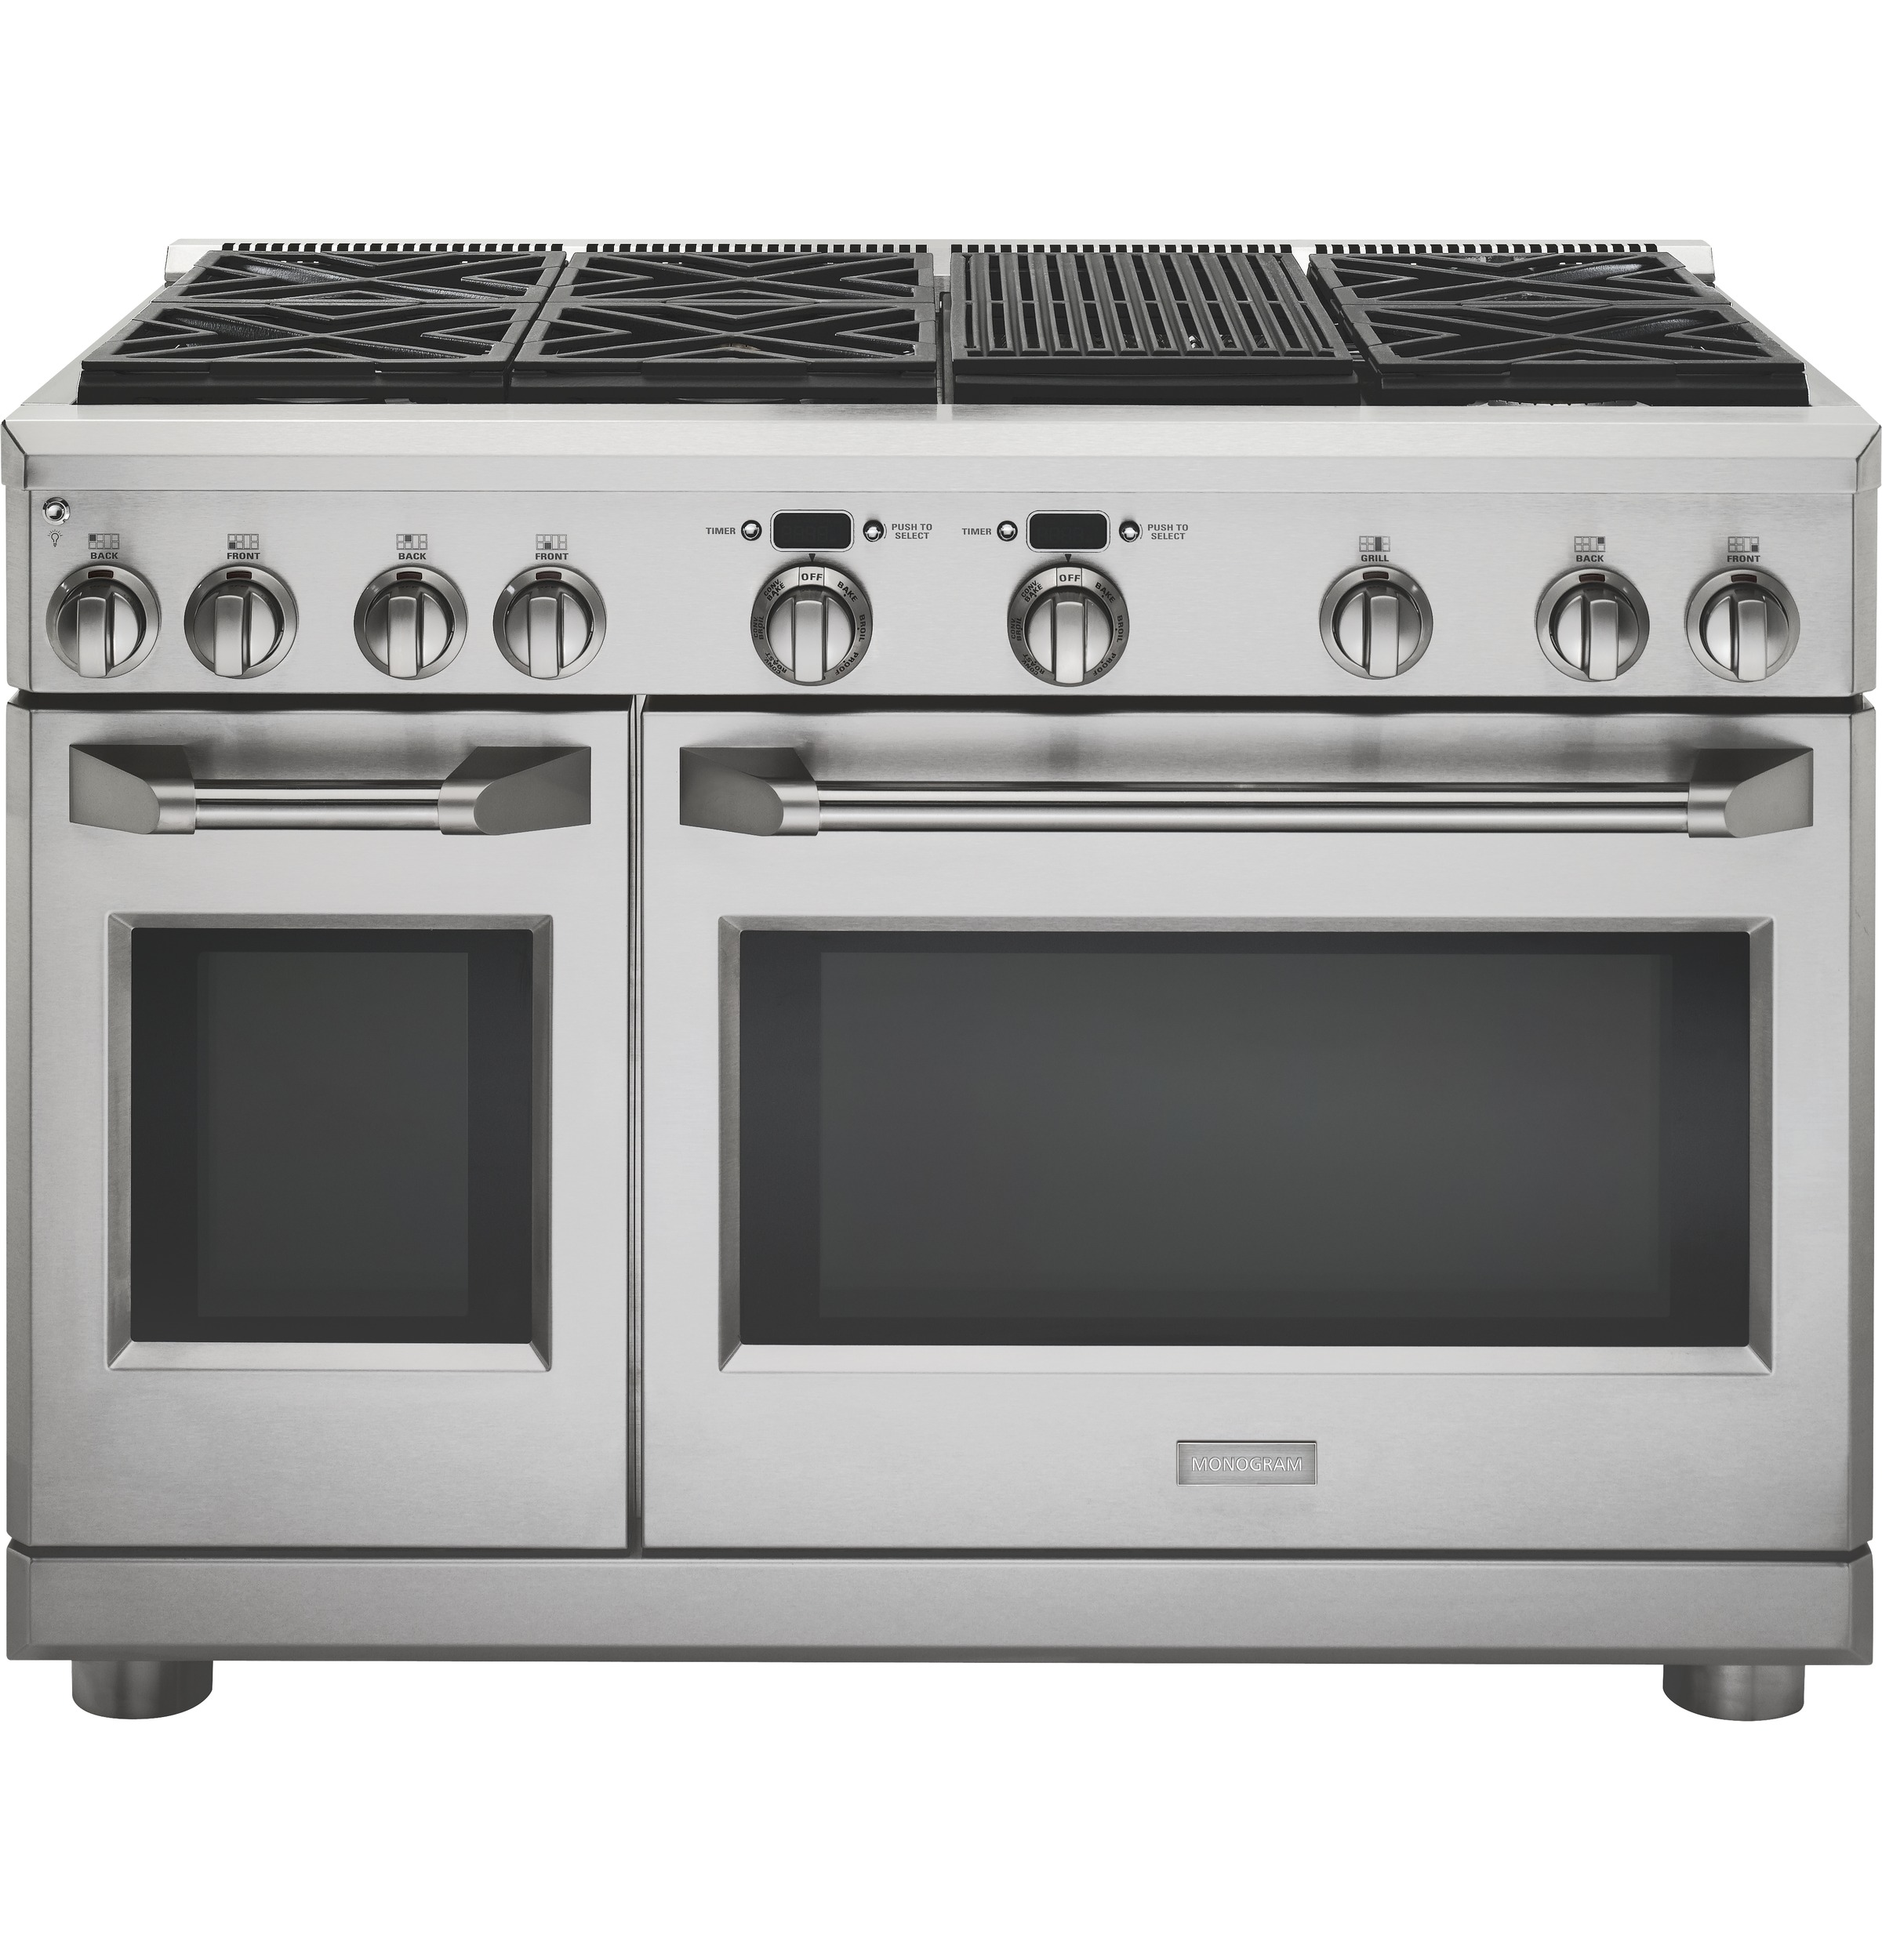 Electric Stove With Grill ~ Monogram quot dual fuel professional range with burners